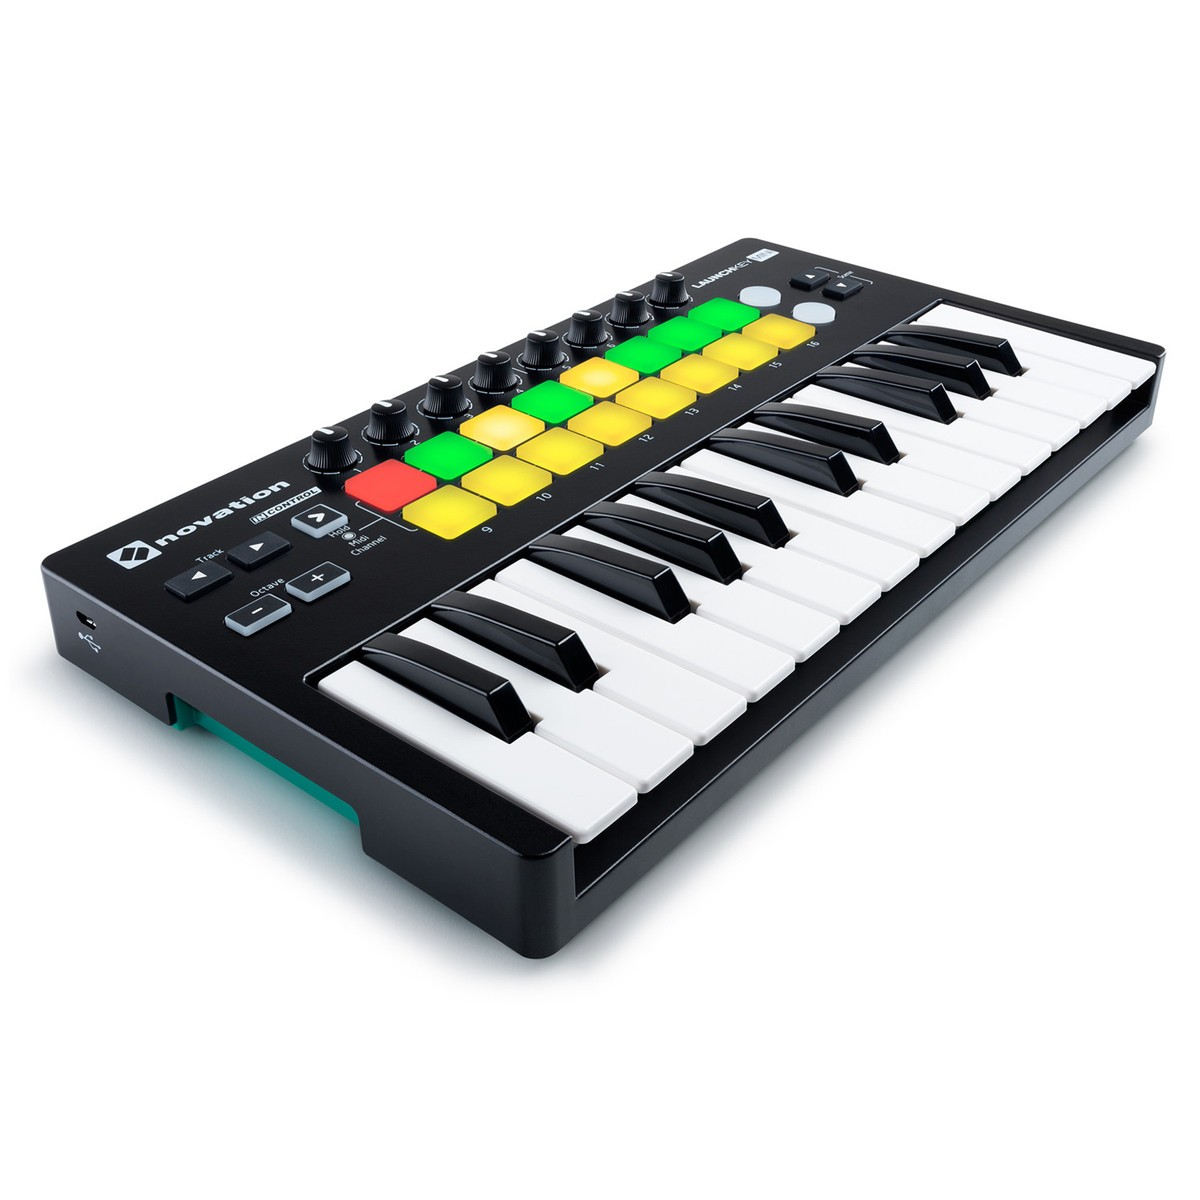 novation launchkey mini mk2 midi keyboard controller for ableton live metro sound and music. Black Bedroom Furniture Sets. Home Design Ideas